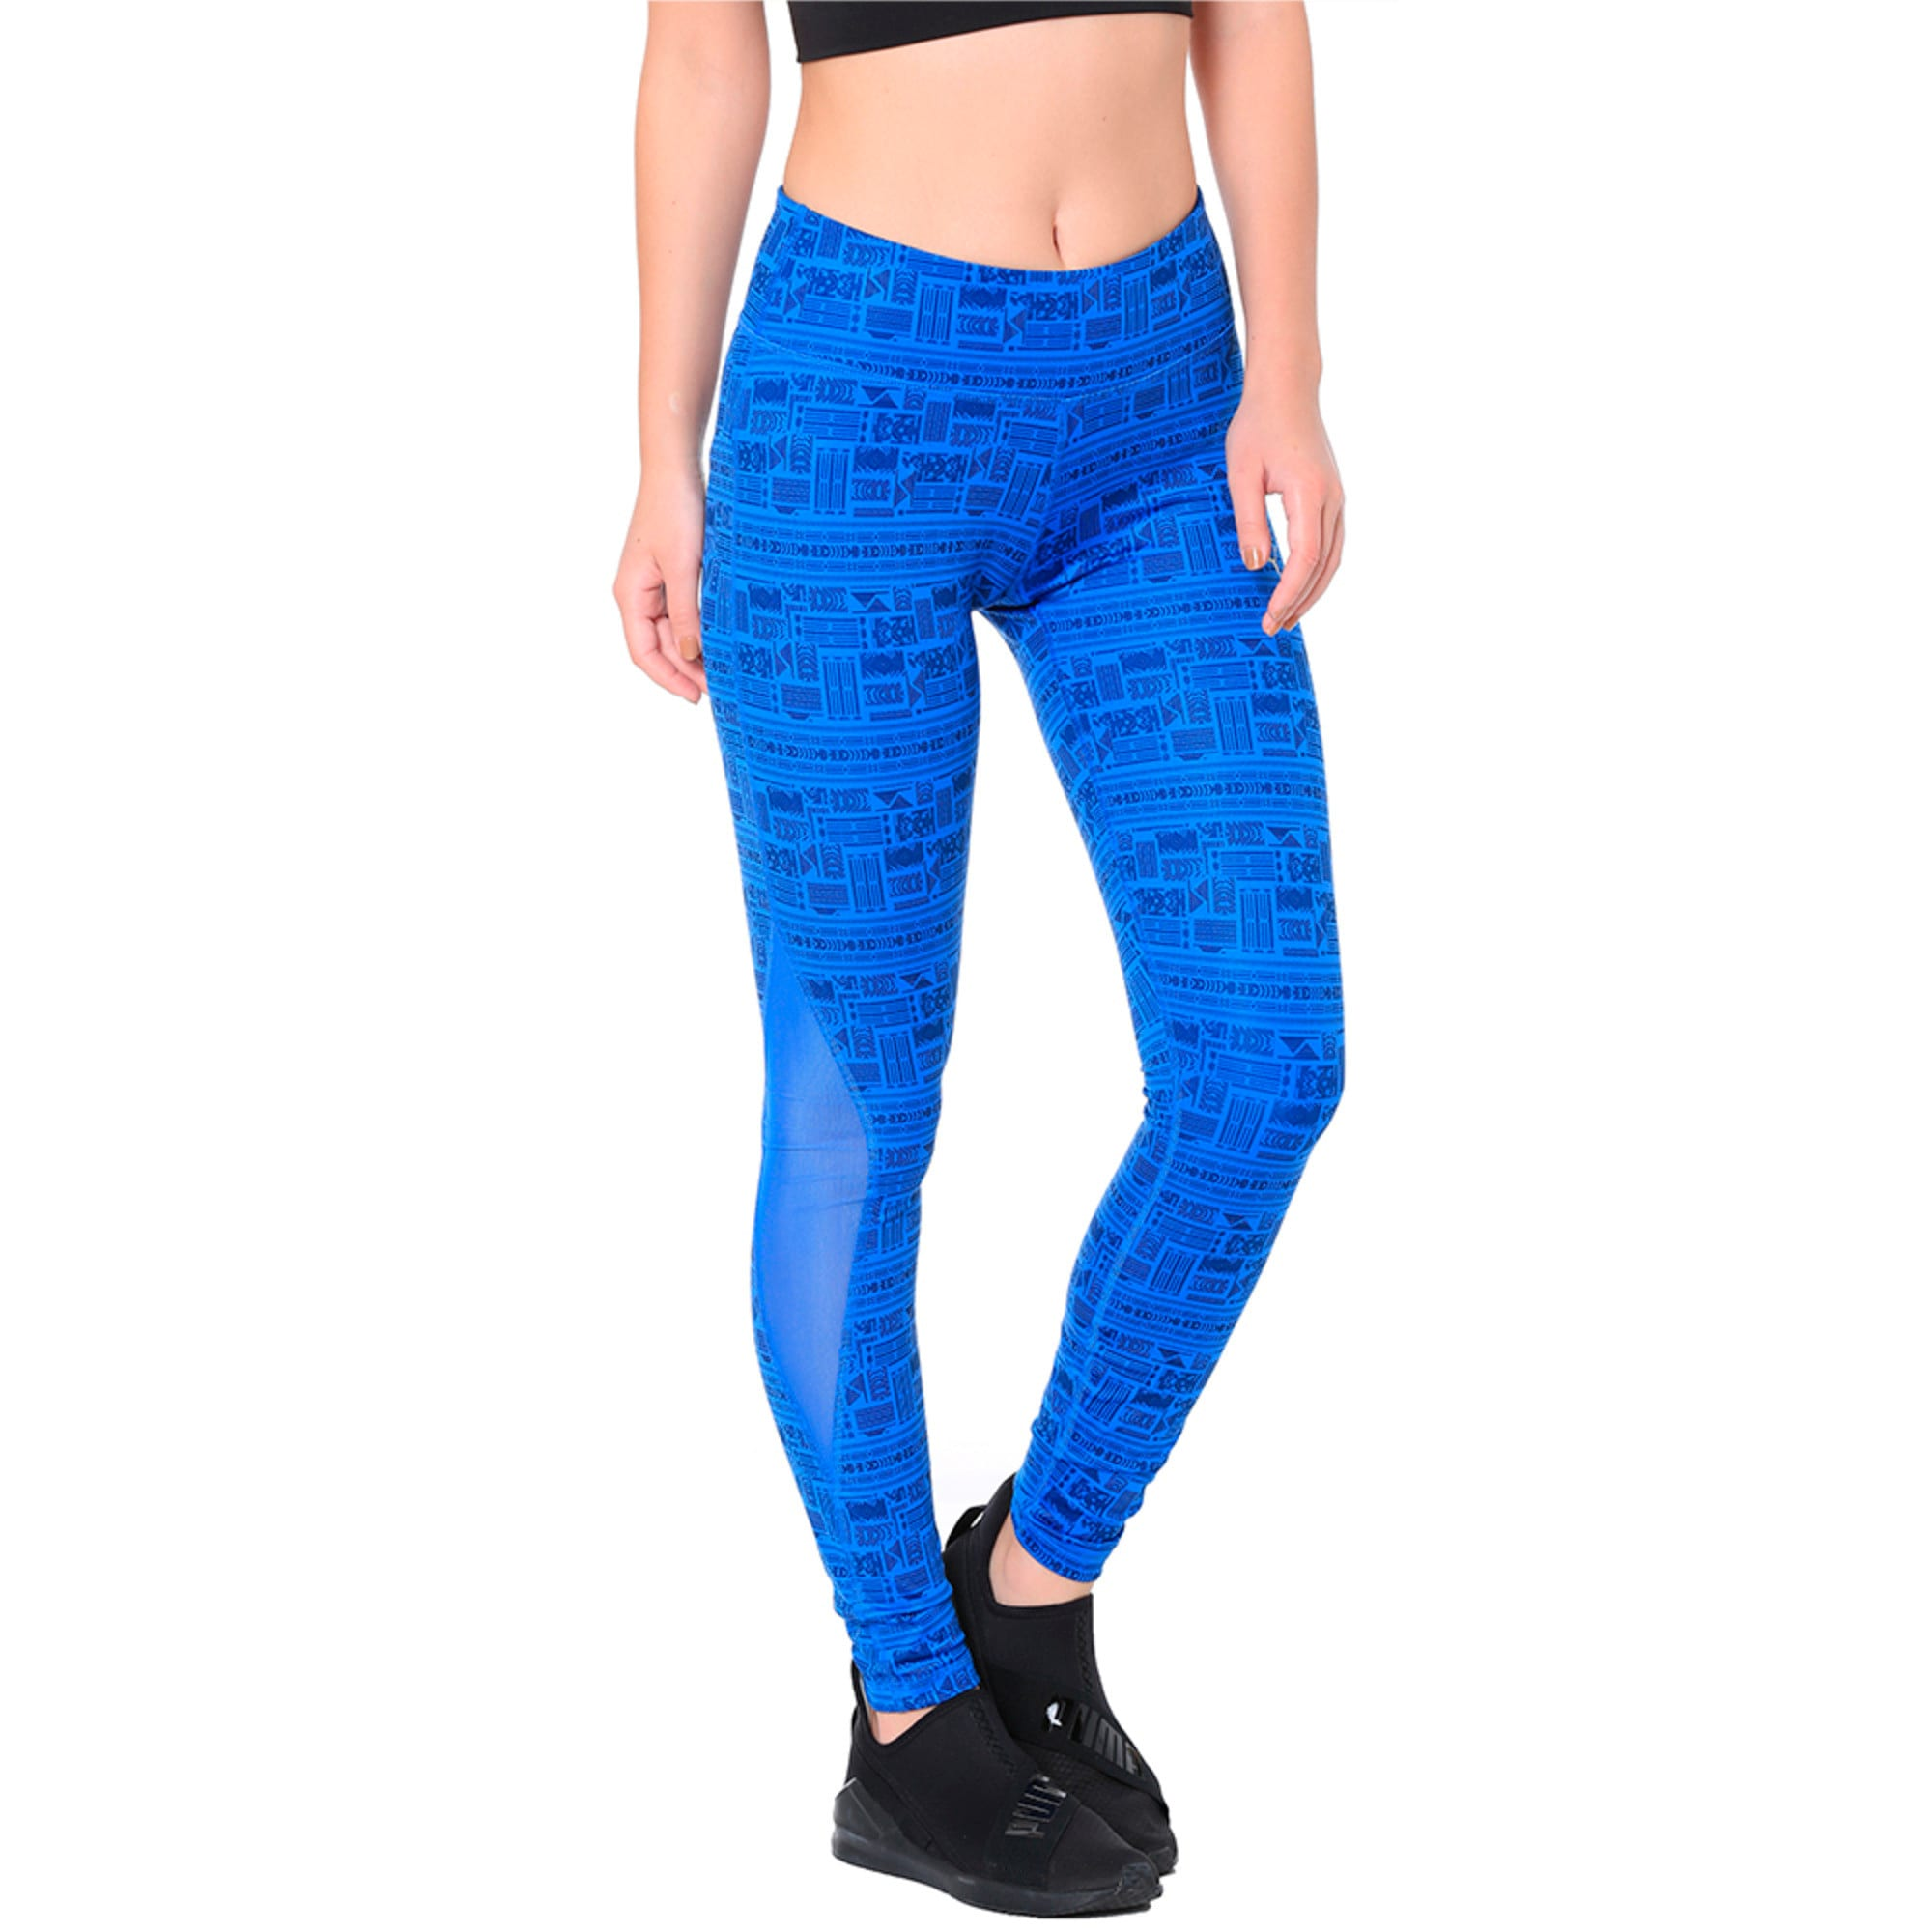 Thumbnail 2 of All Eyes On Me Mesh Women's Tights, Nebulas Blue-Soltice, medium-IND